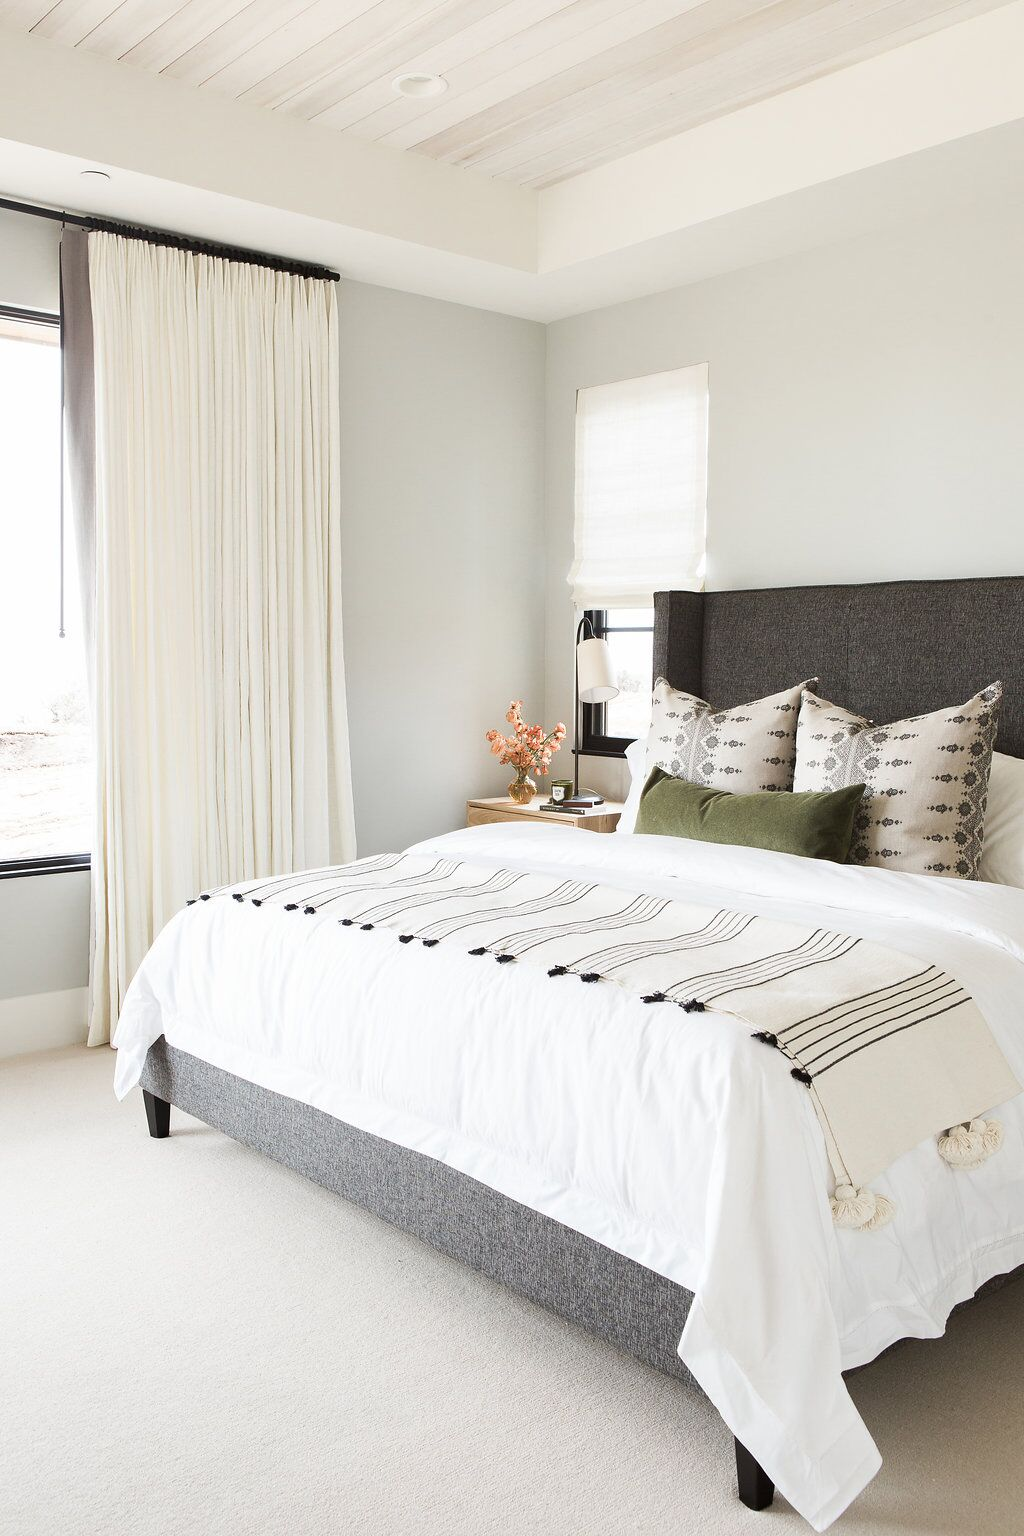 Large white bed with window with drapes